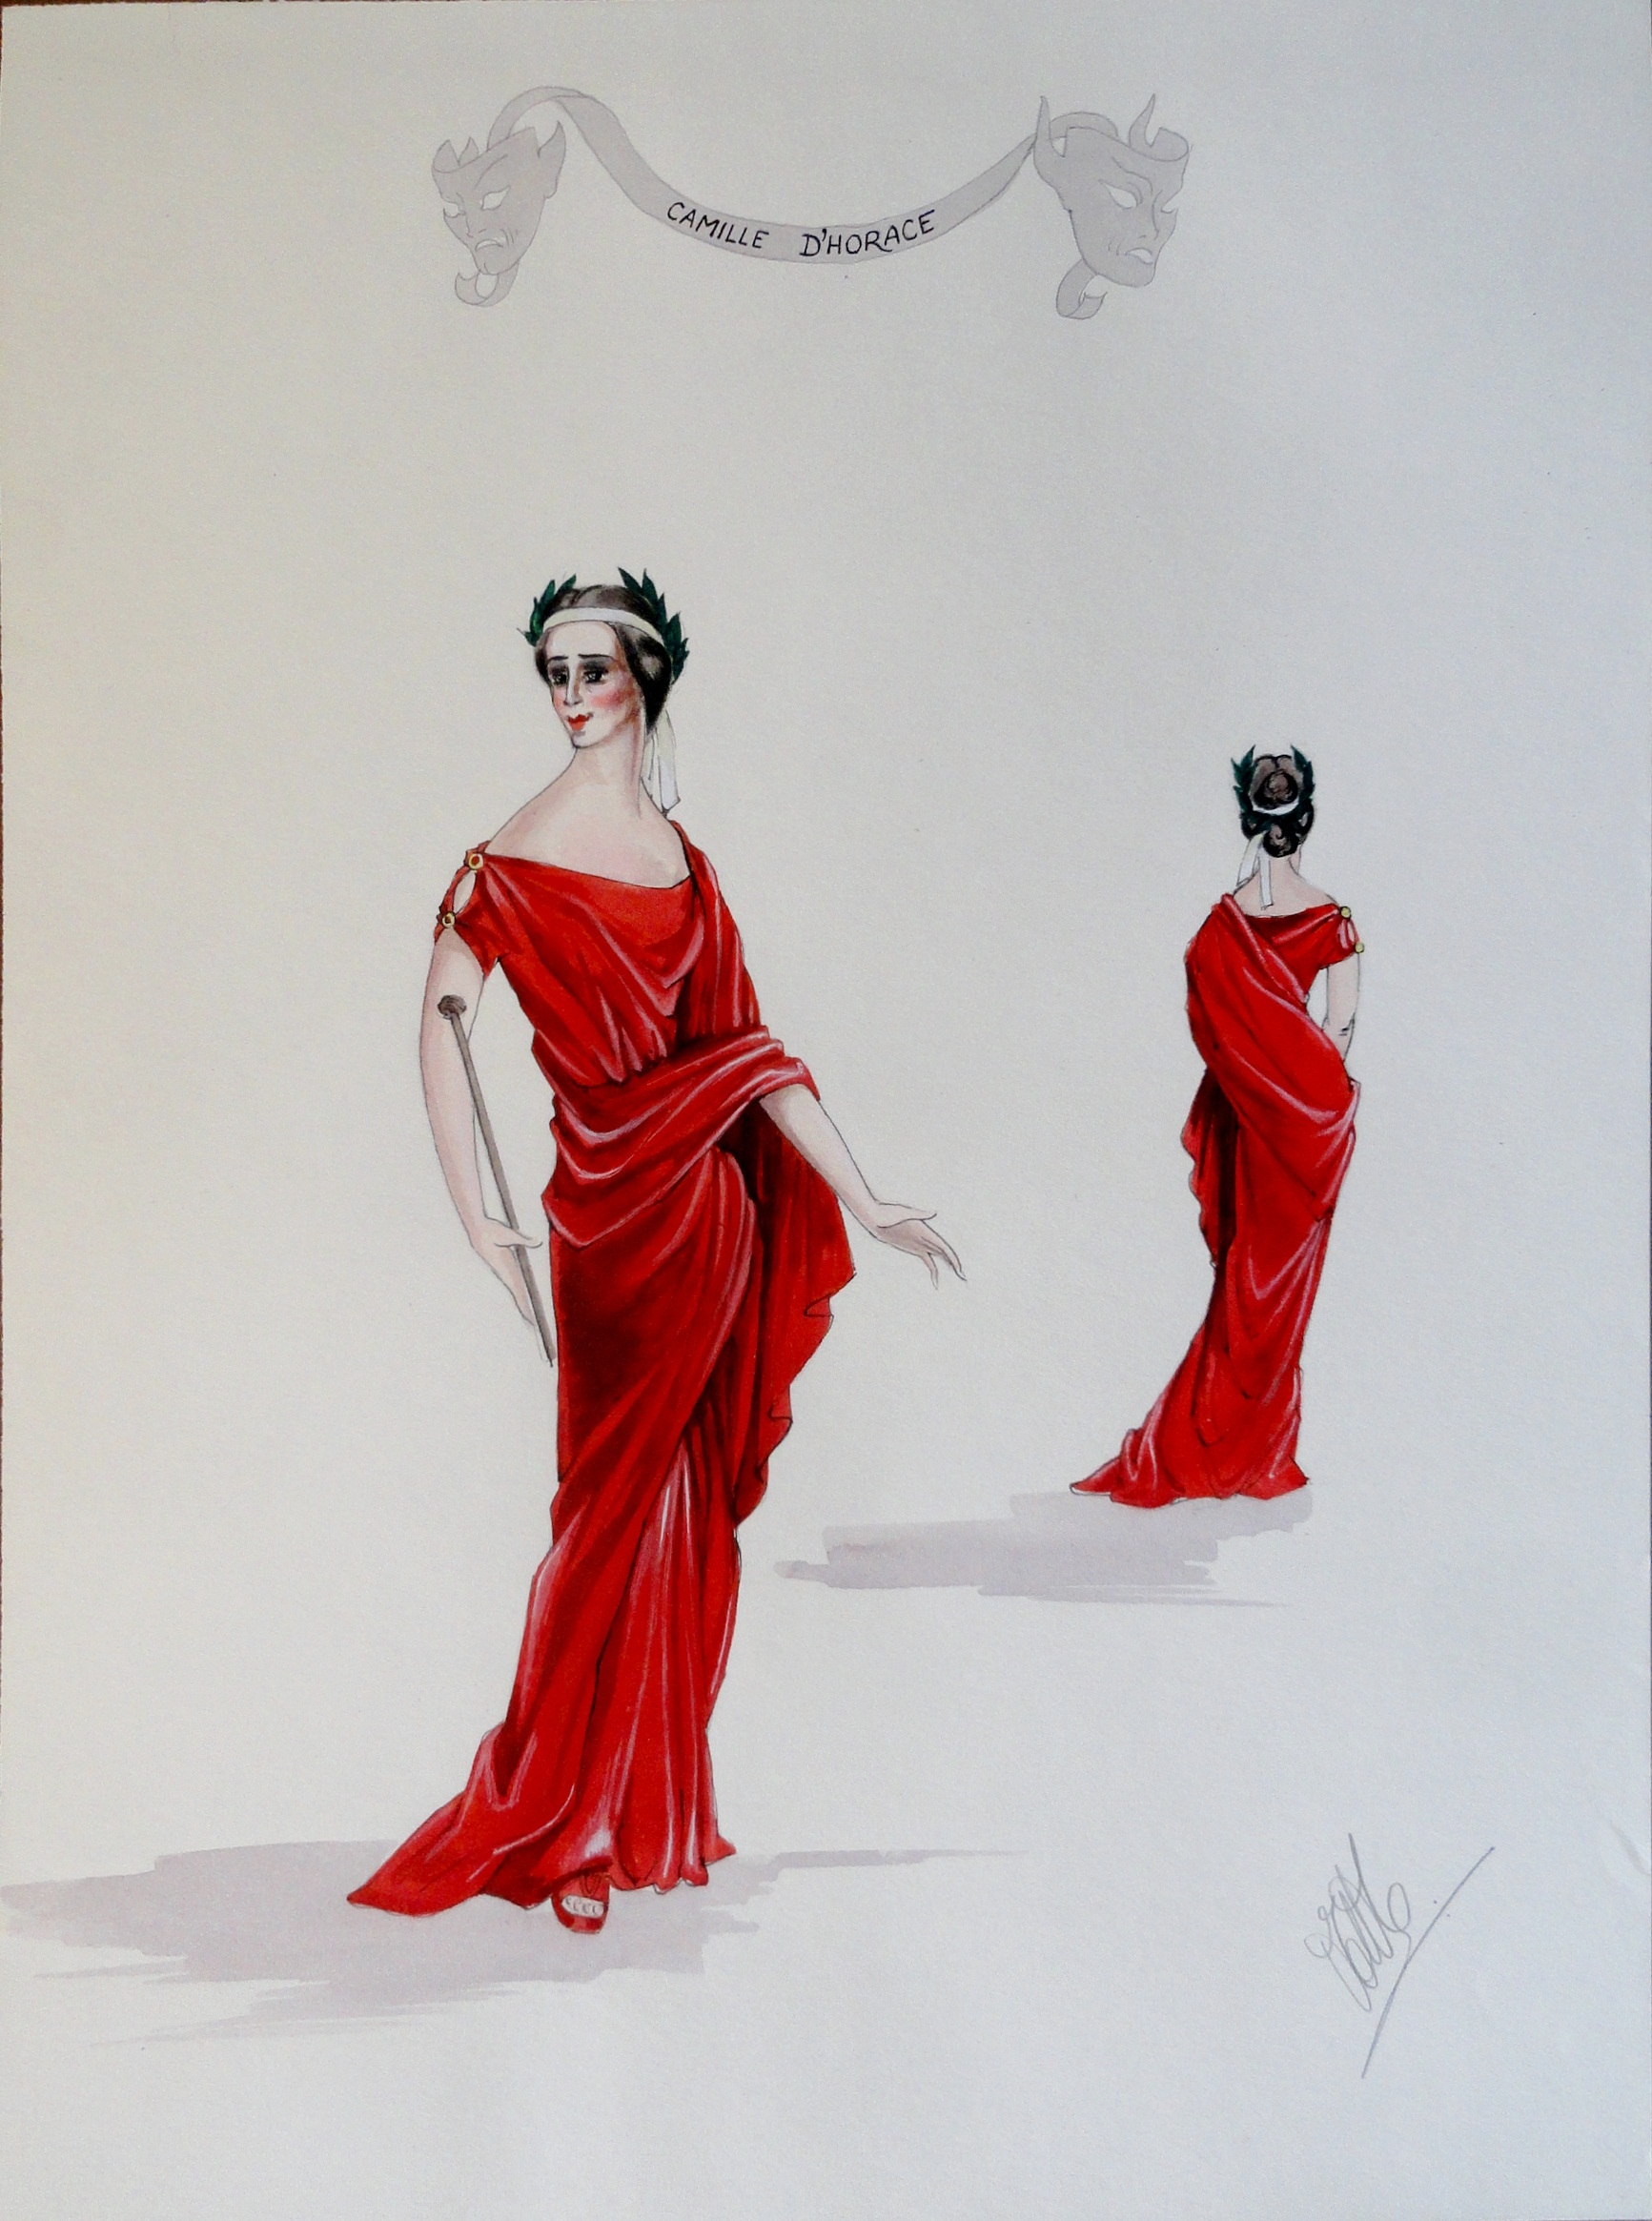 Rachel as Camille d'Horace in red grecian revival dress. Pen and Ink and Gouache. From the Rachel Portfolio by Owen Hyde Clark. $400.00.